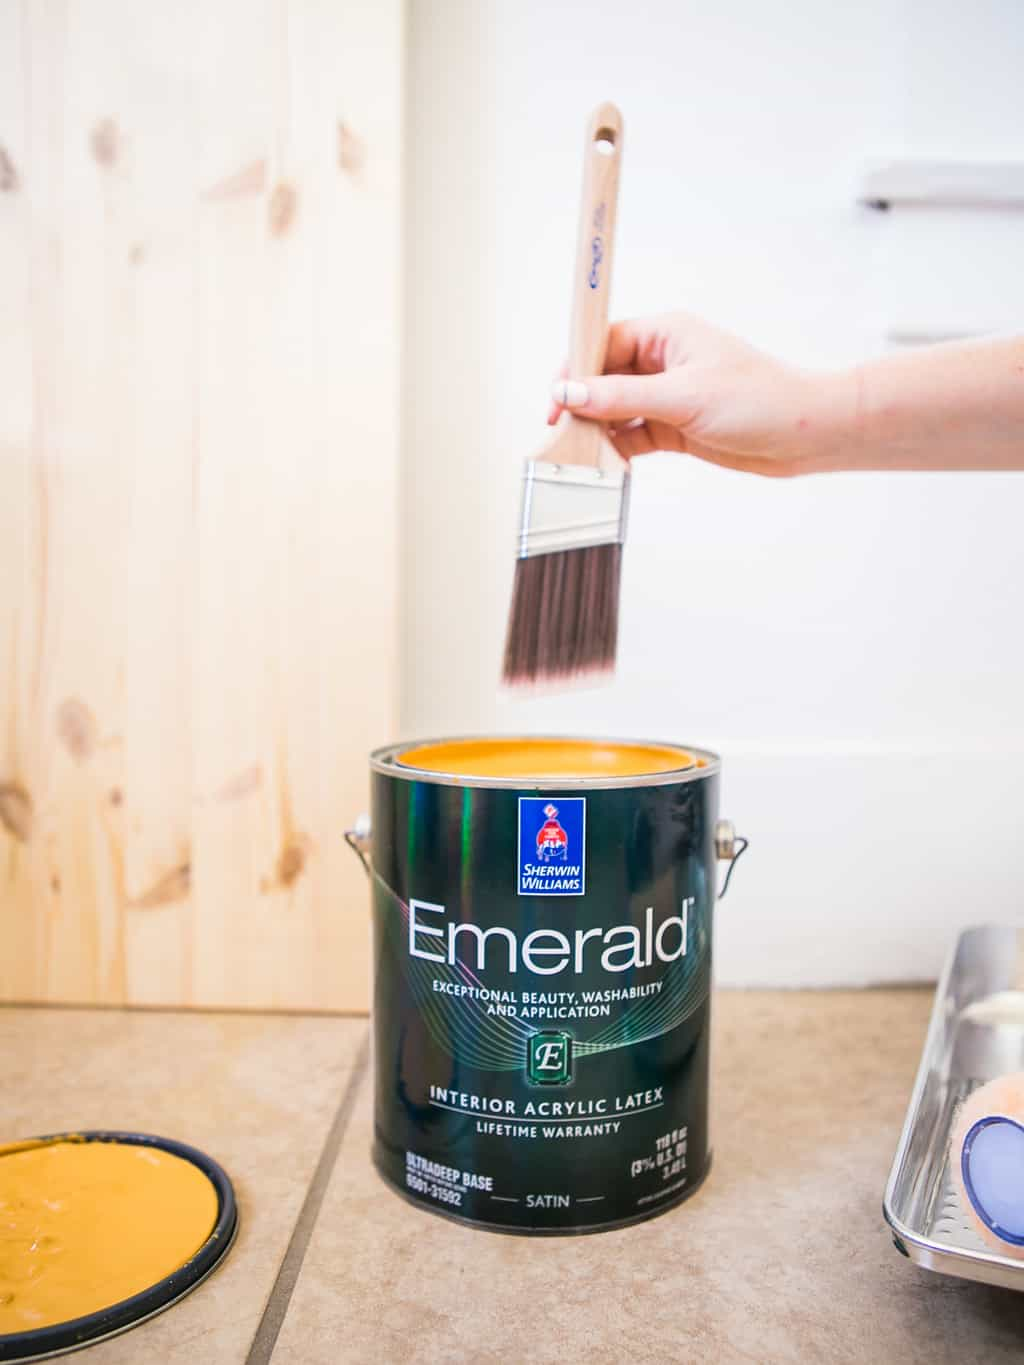 Paint brush with a can of yellow mustard Sherwin Williams paint.